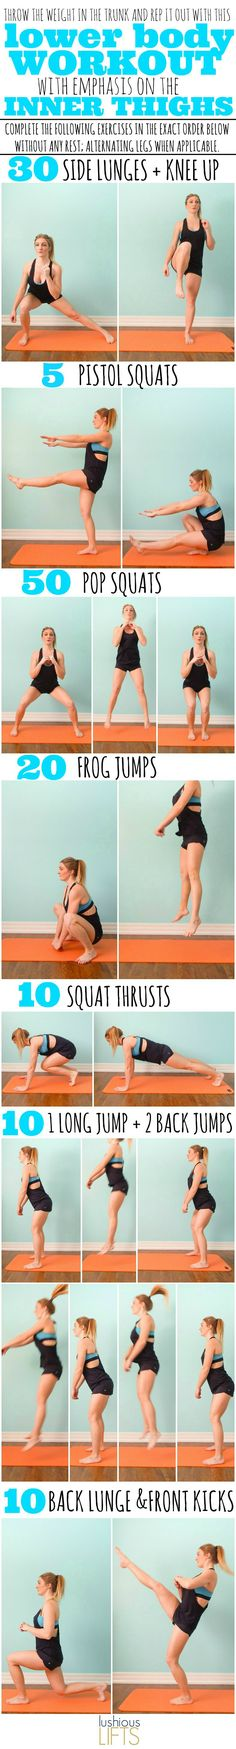 //Lower Body Workout with emphasis on the Inner Thighs. The bodyweight workout that will make you feel strong and accomplished! #health #fitness #motivation